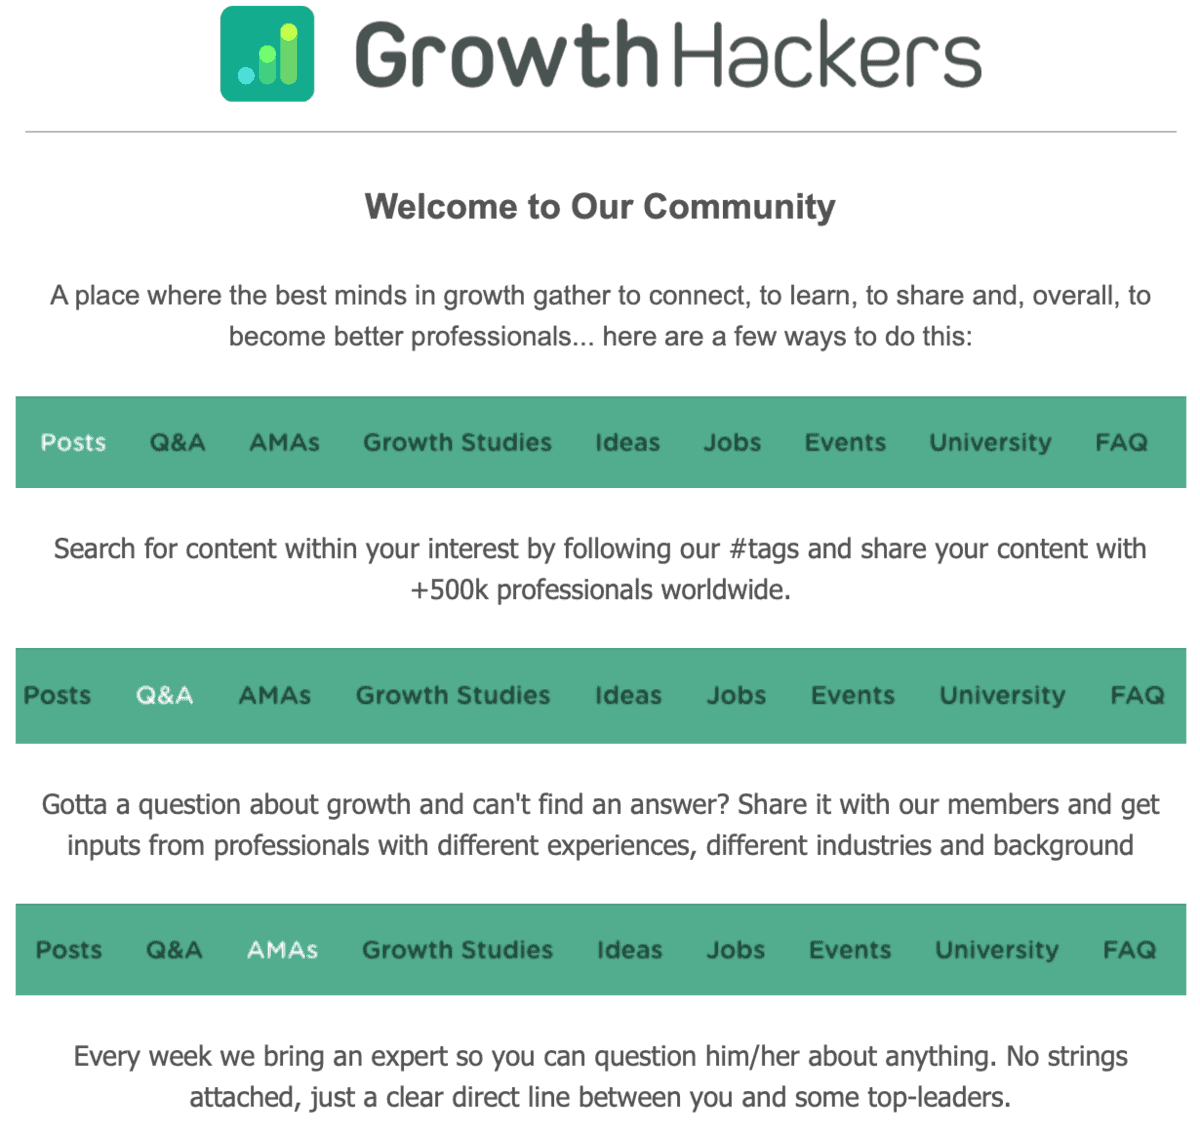 GrowthHackers Welcome Email